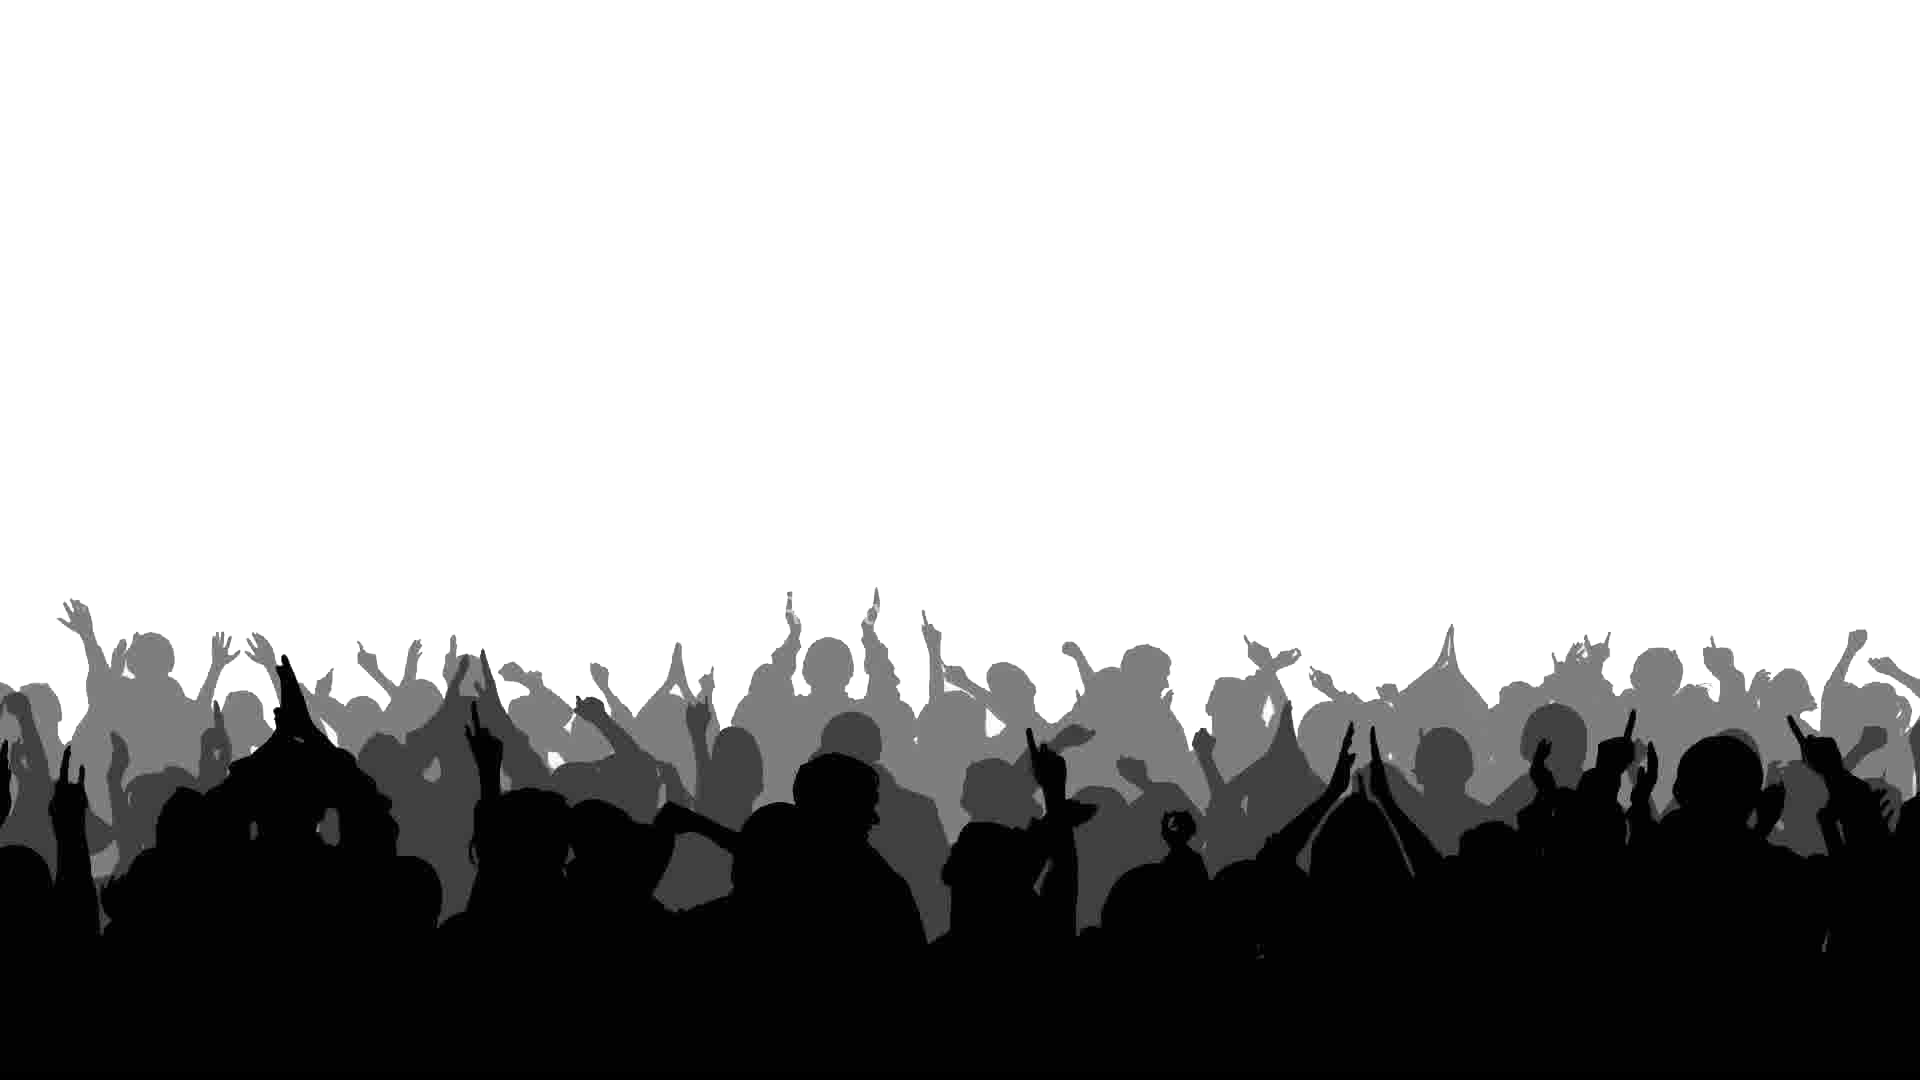 Crowd PNG Images, Crowd Of People, Silhouette Clipart Free.